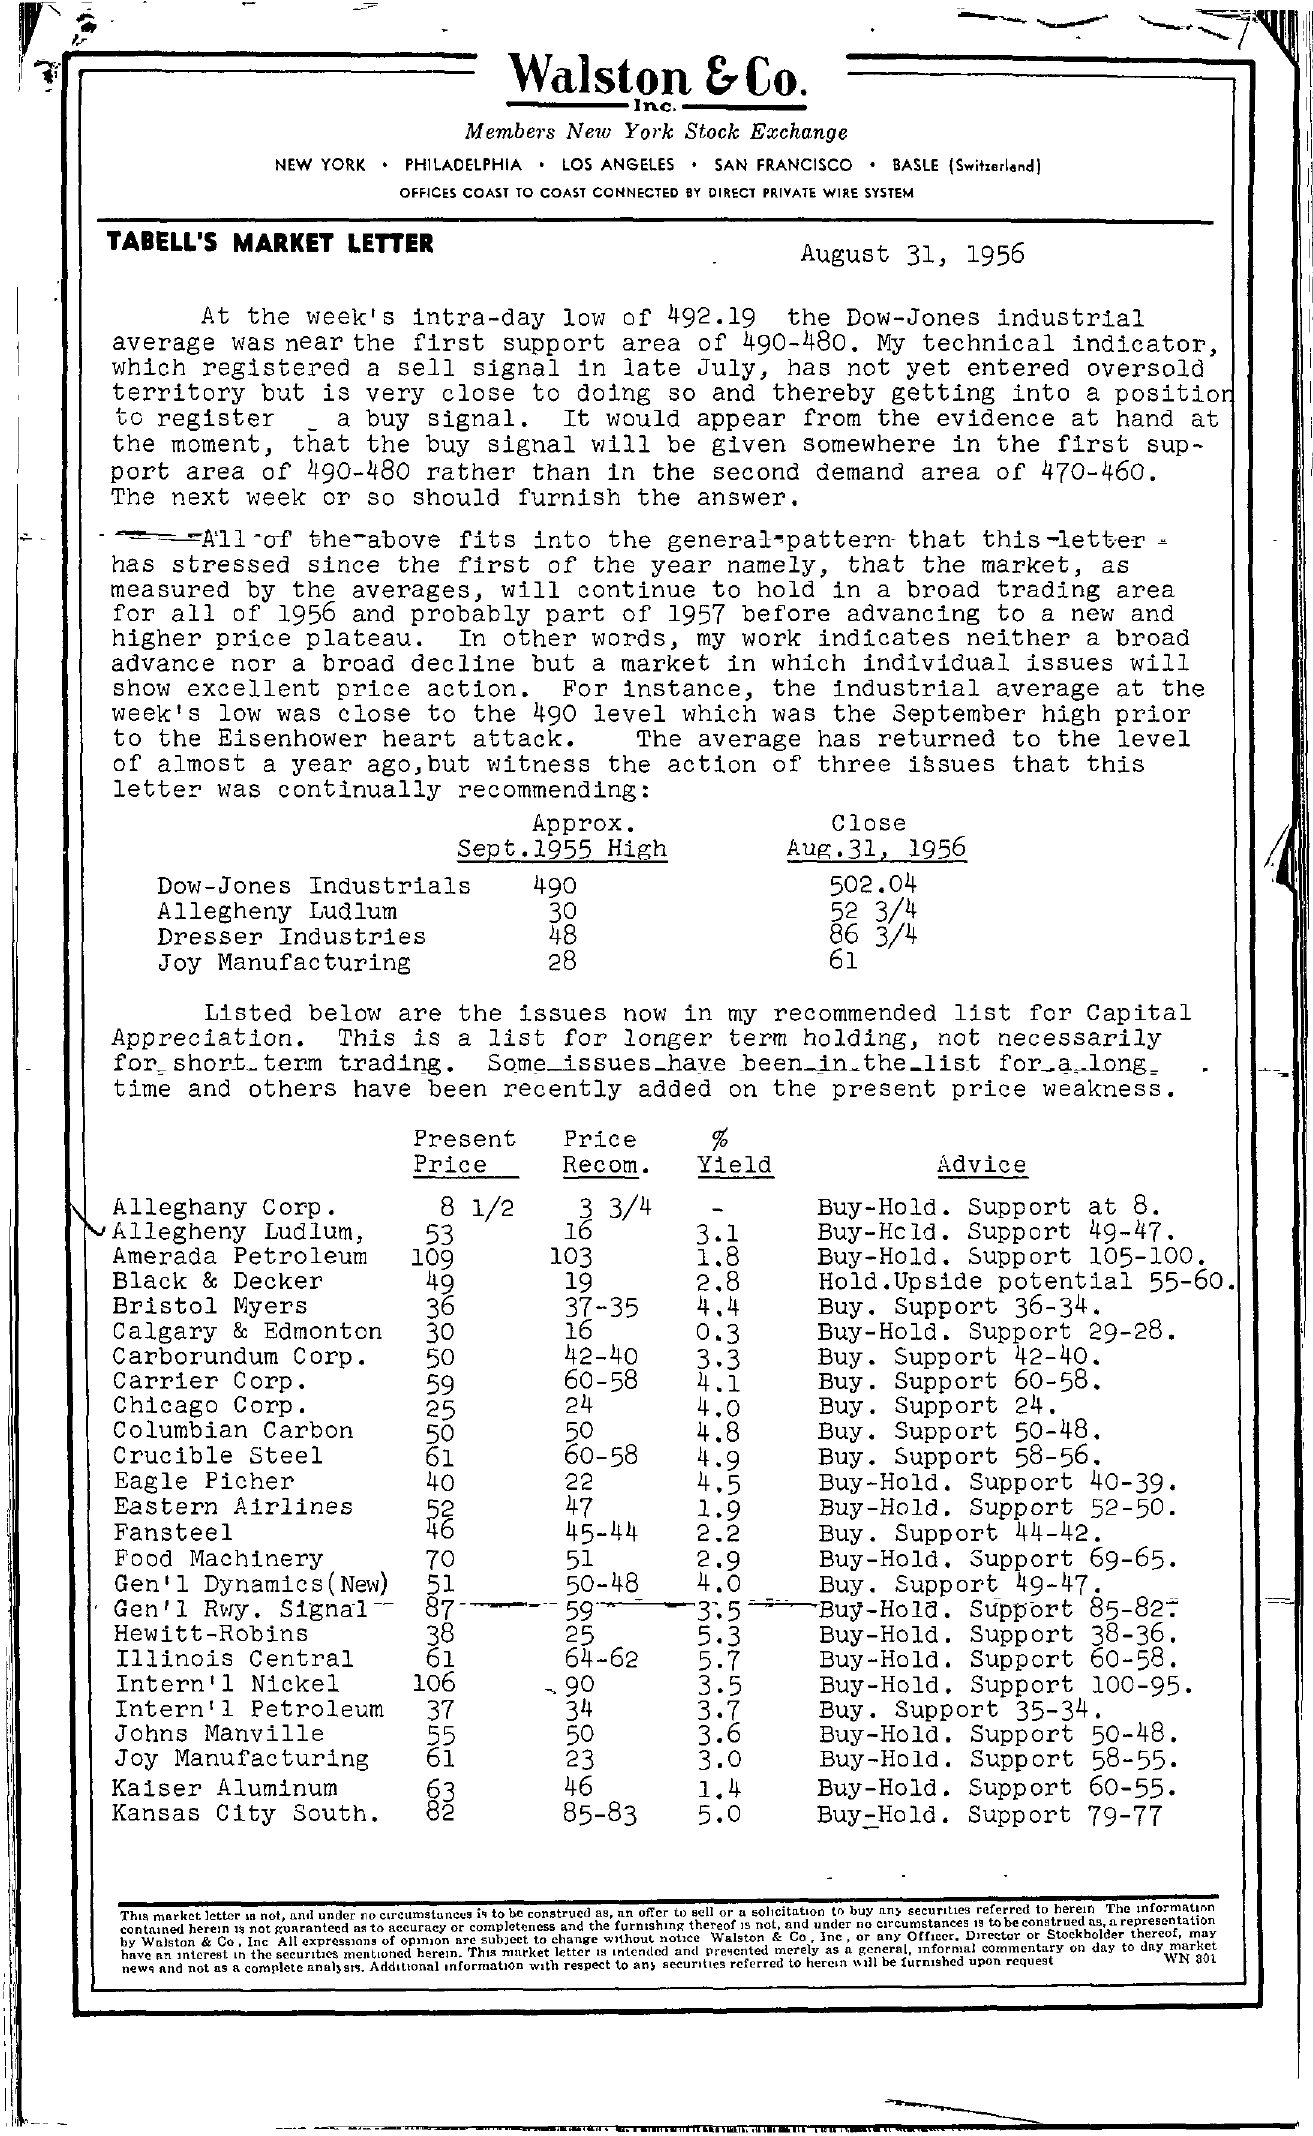 Tabell's Market Letter - August 31, 1956 page 1